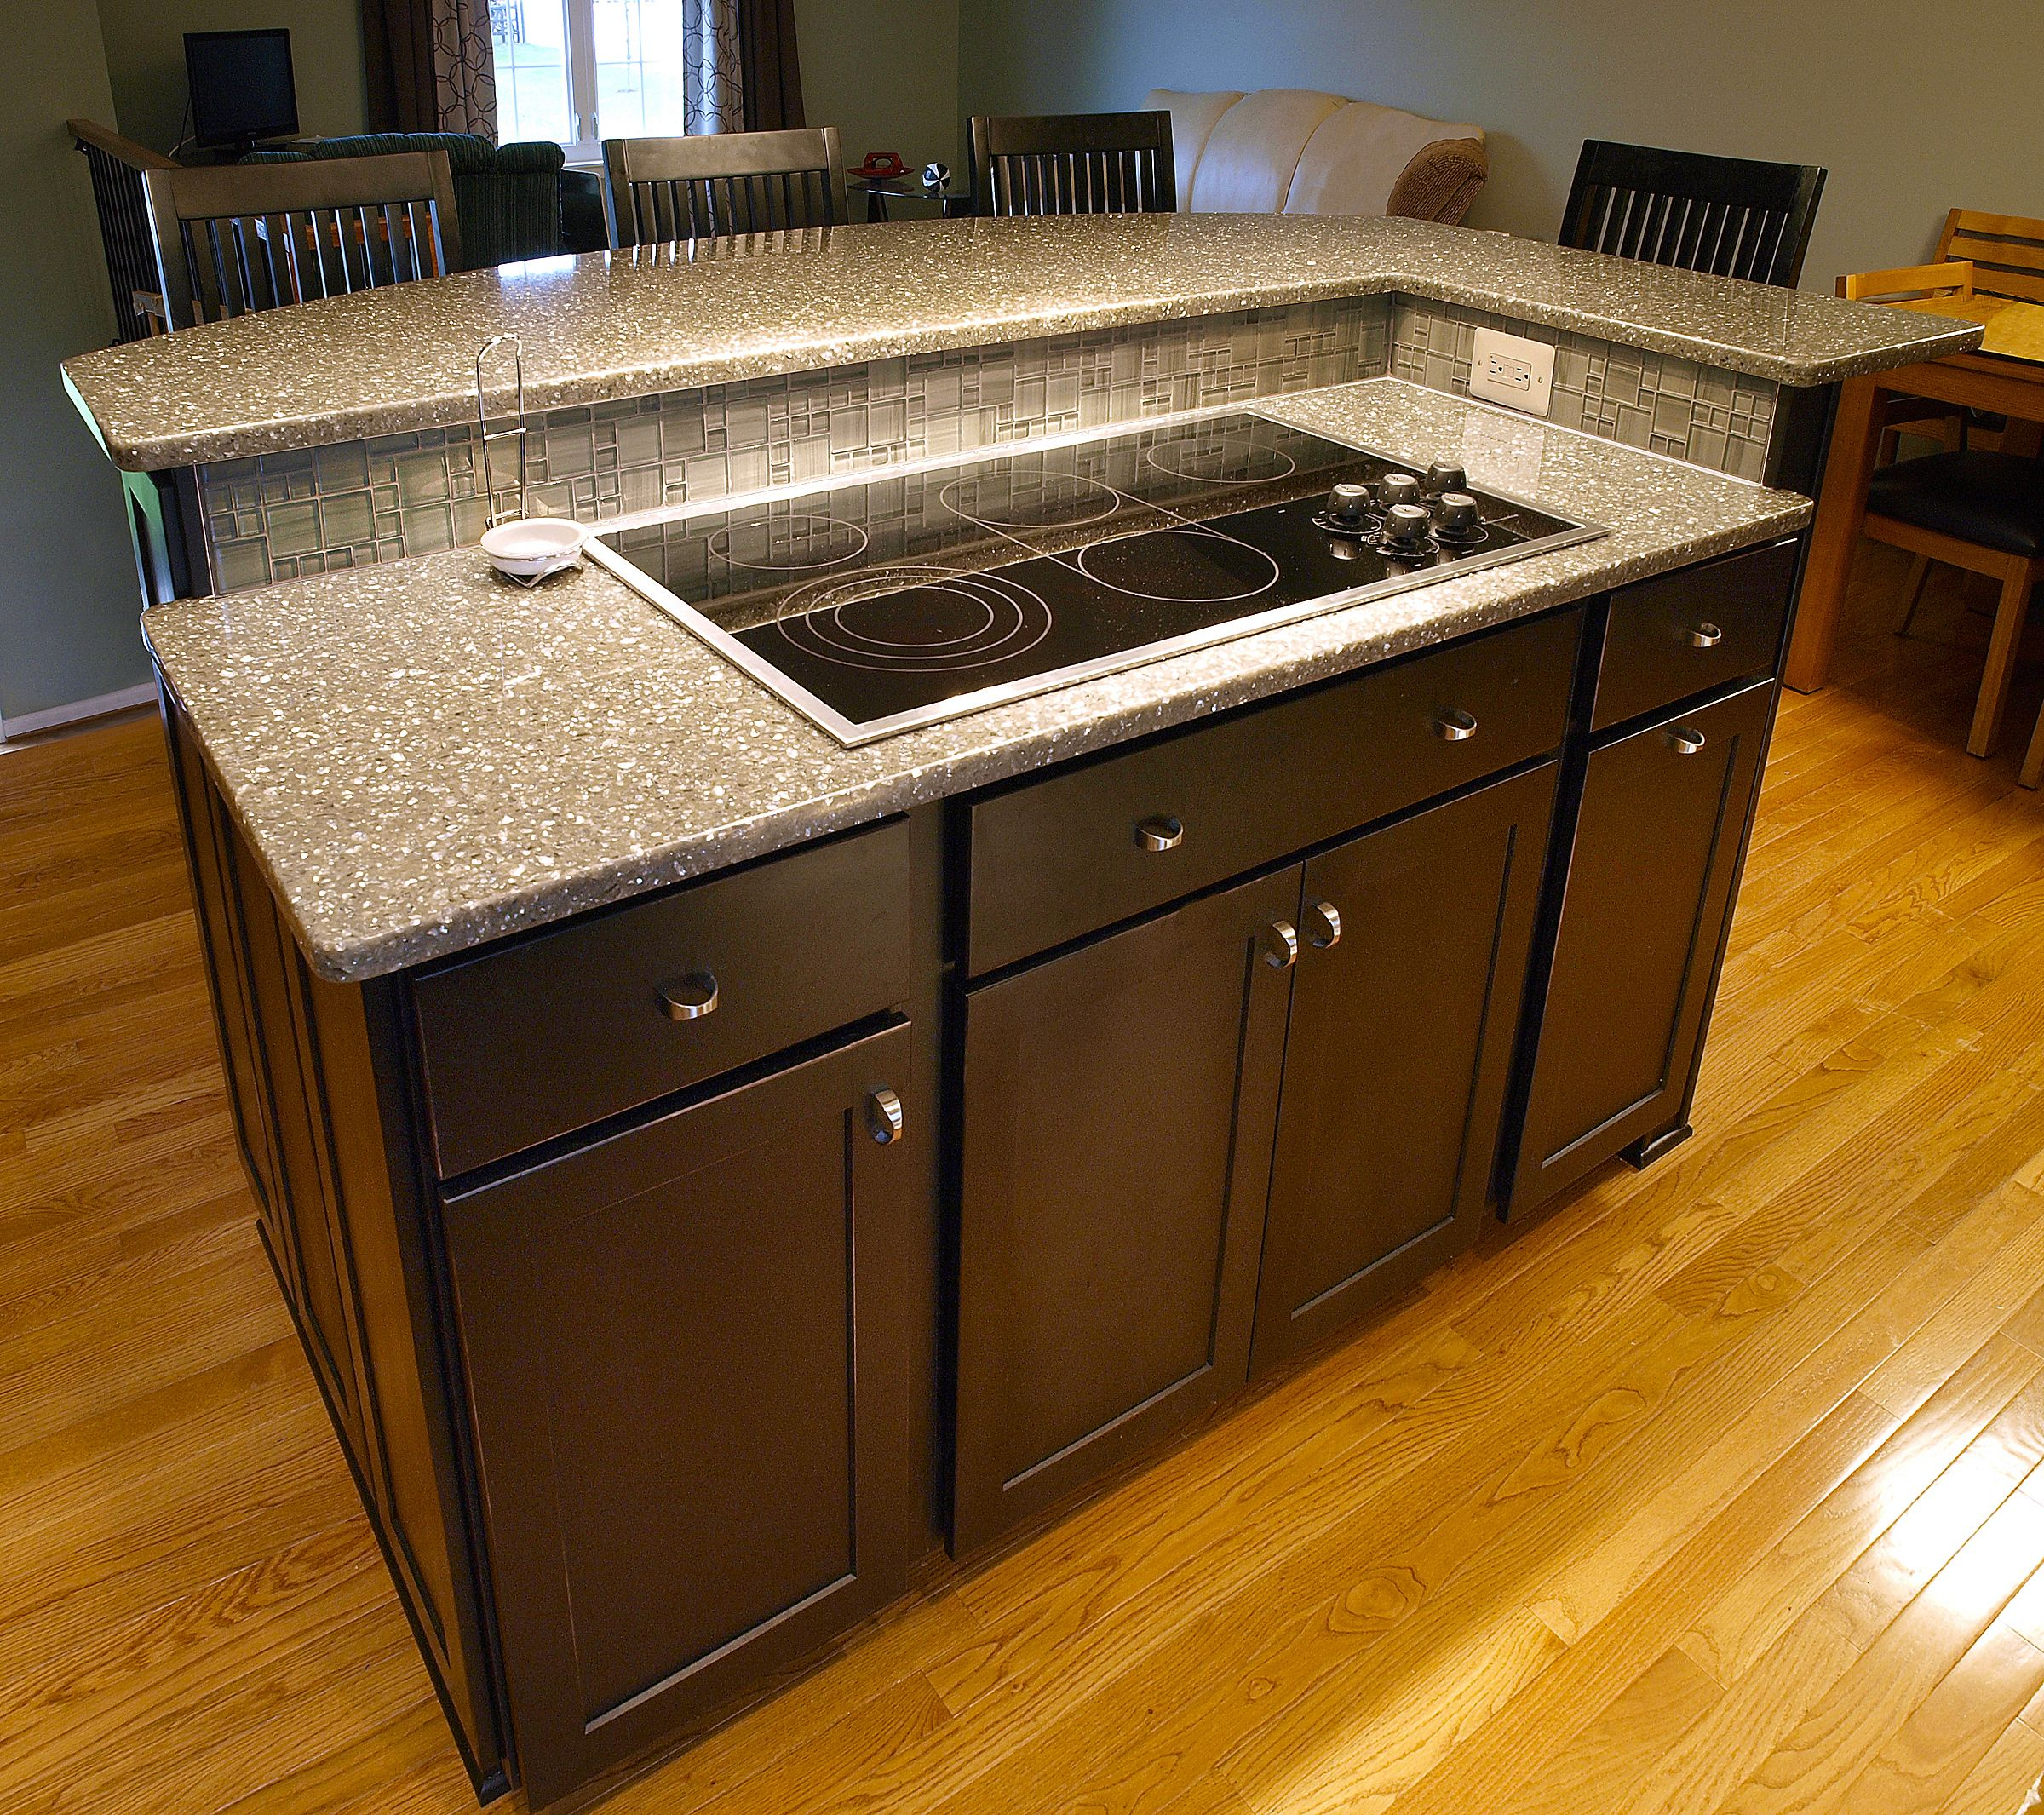 Kitchen Island With Cook-top In Bel Air, MD